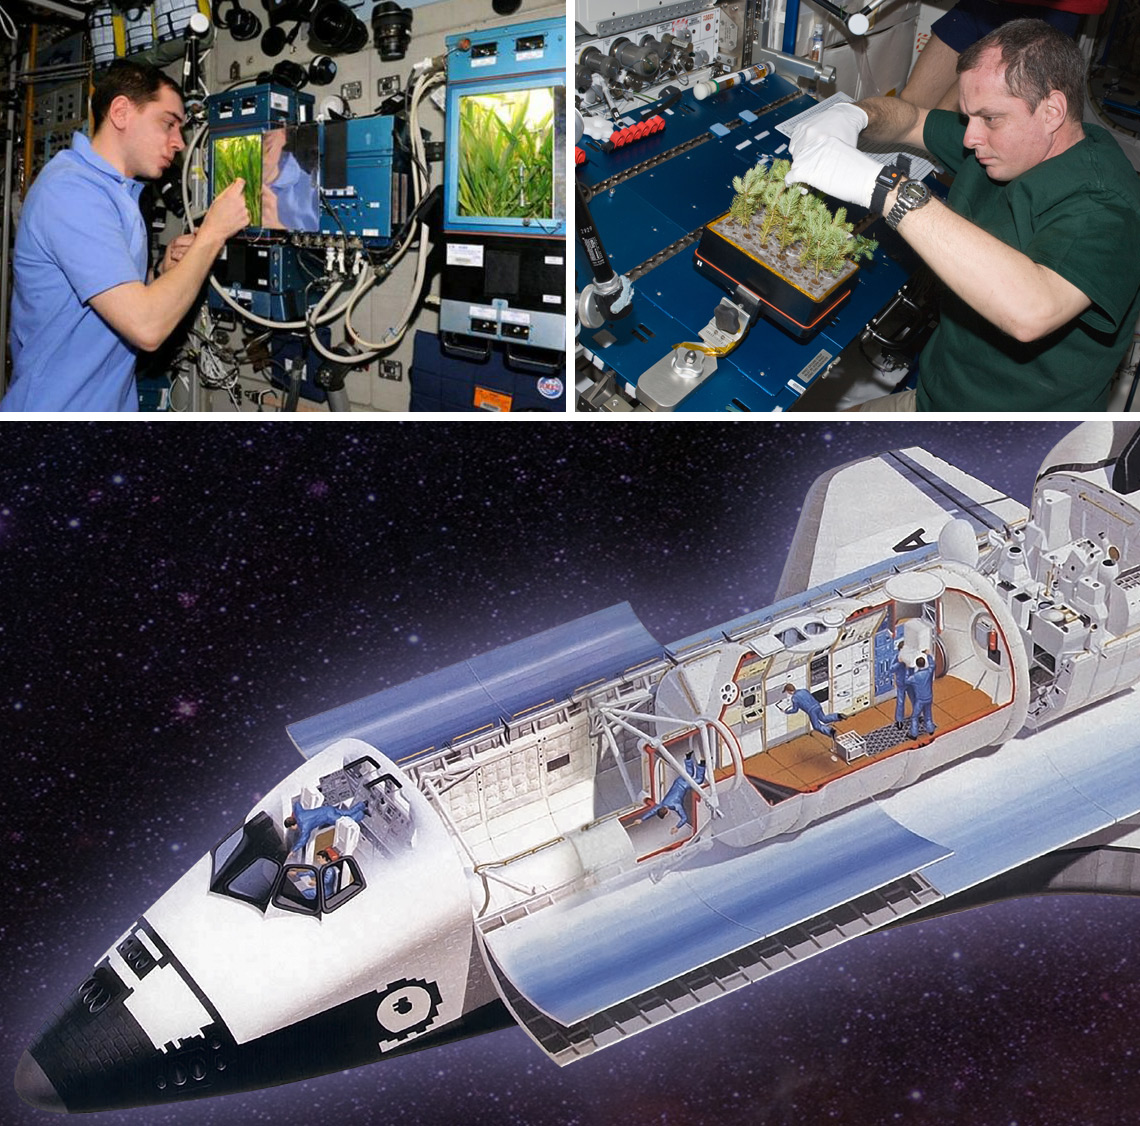 Experiments on the Space Shuttle were conducted in Spacelab.